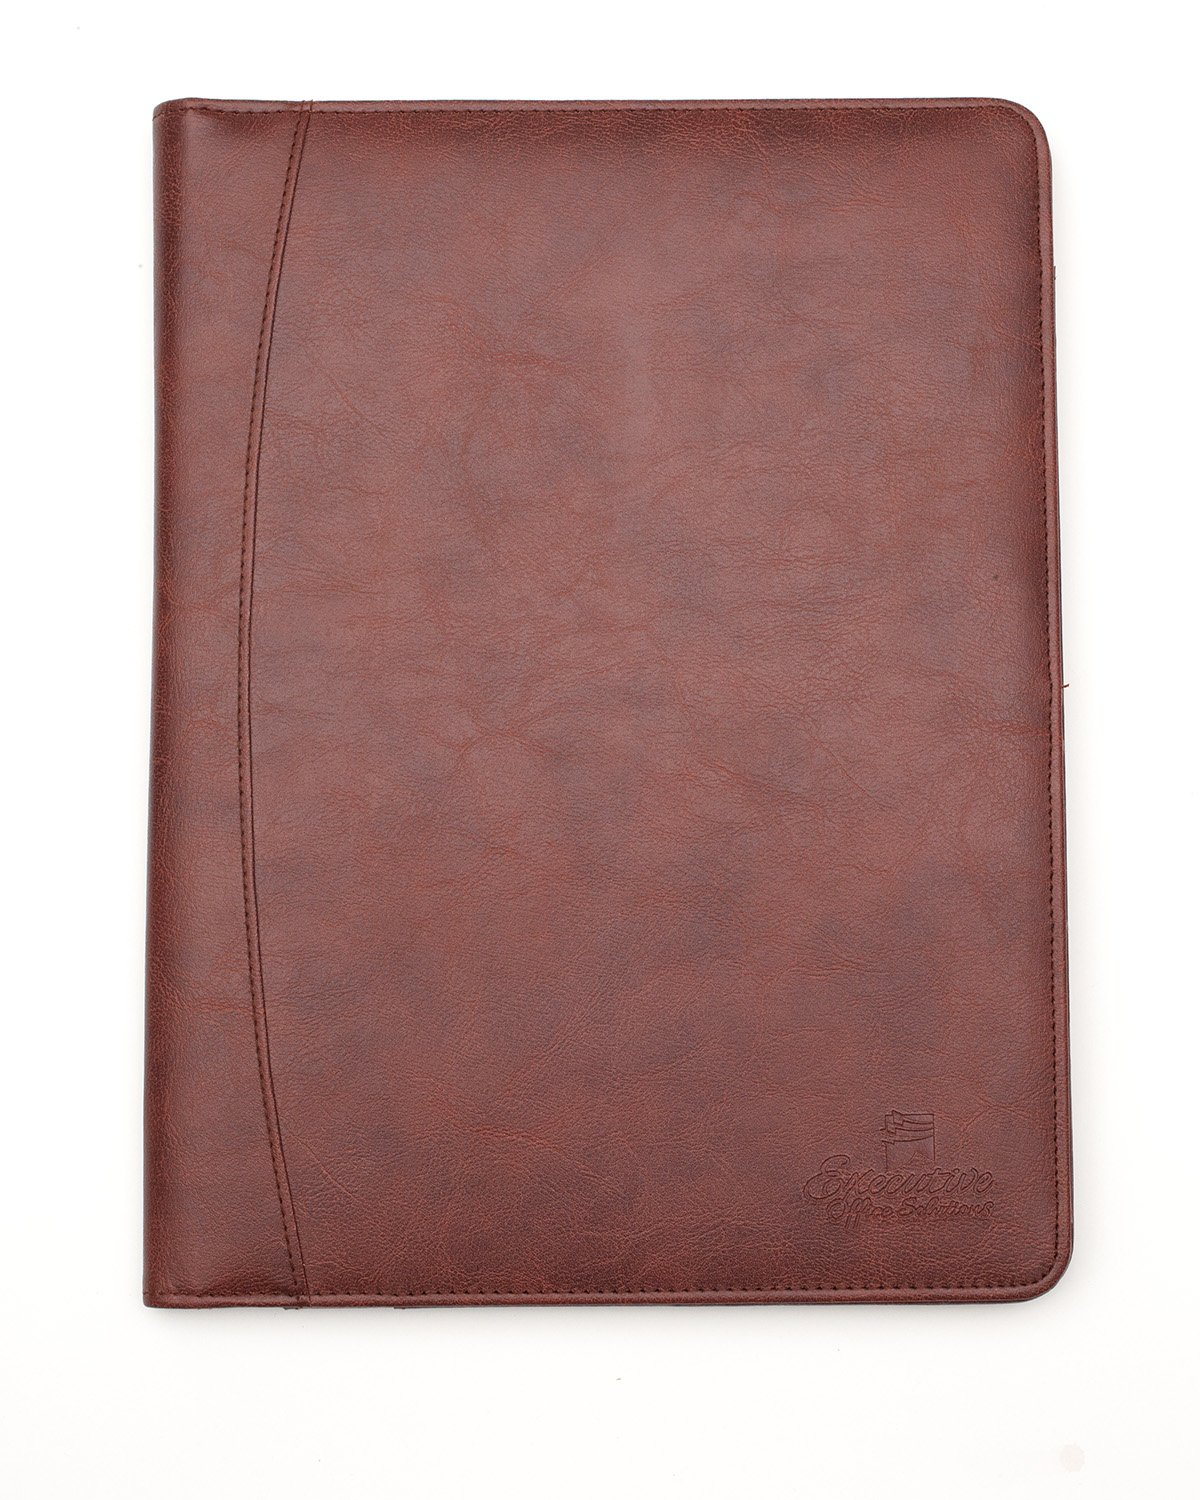 Professional Business Padfolio/Portfolio Case Organizer Resume/Interview Folder Synthetic Leather With Refillable Letter Size Writing Pad - Brown